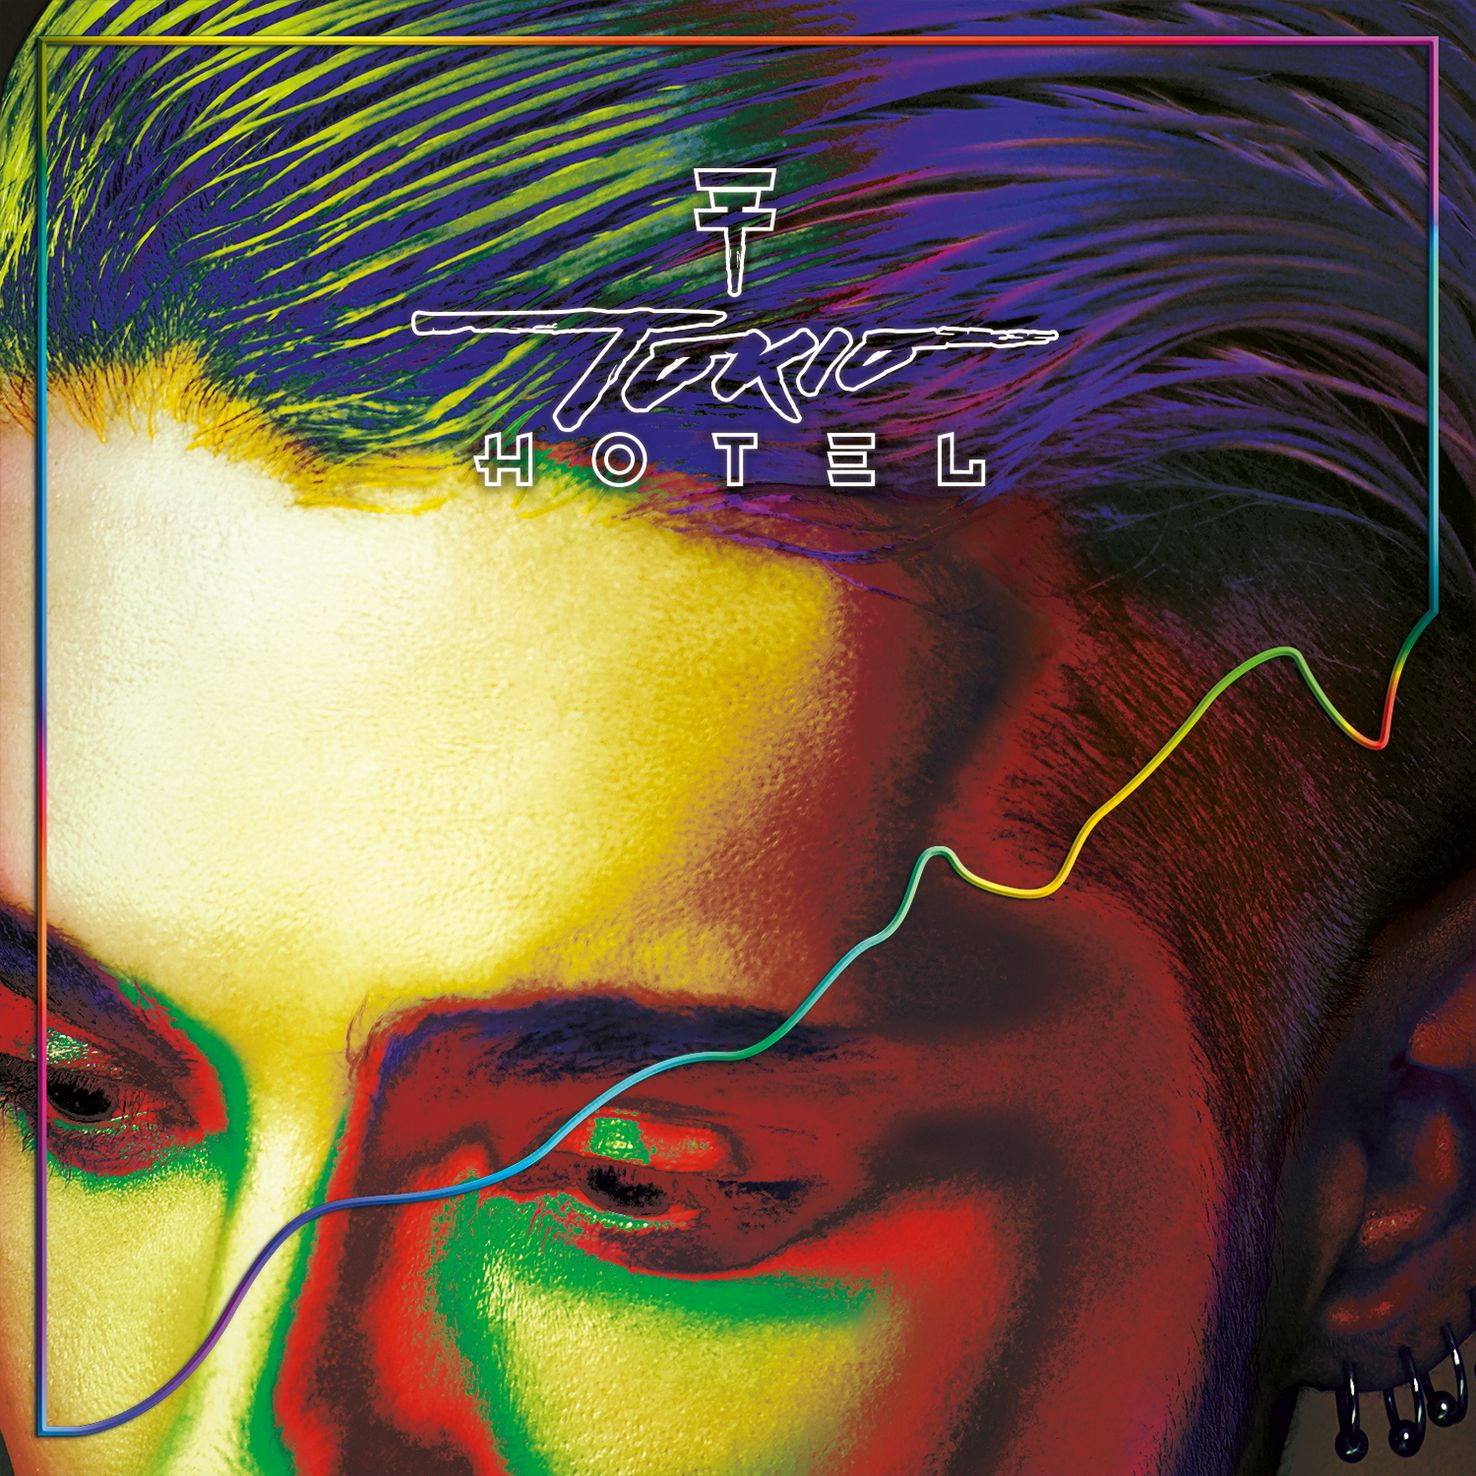 Tokio Hotel - Kings Of Suburbia album cover